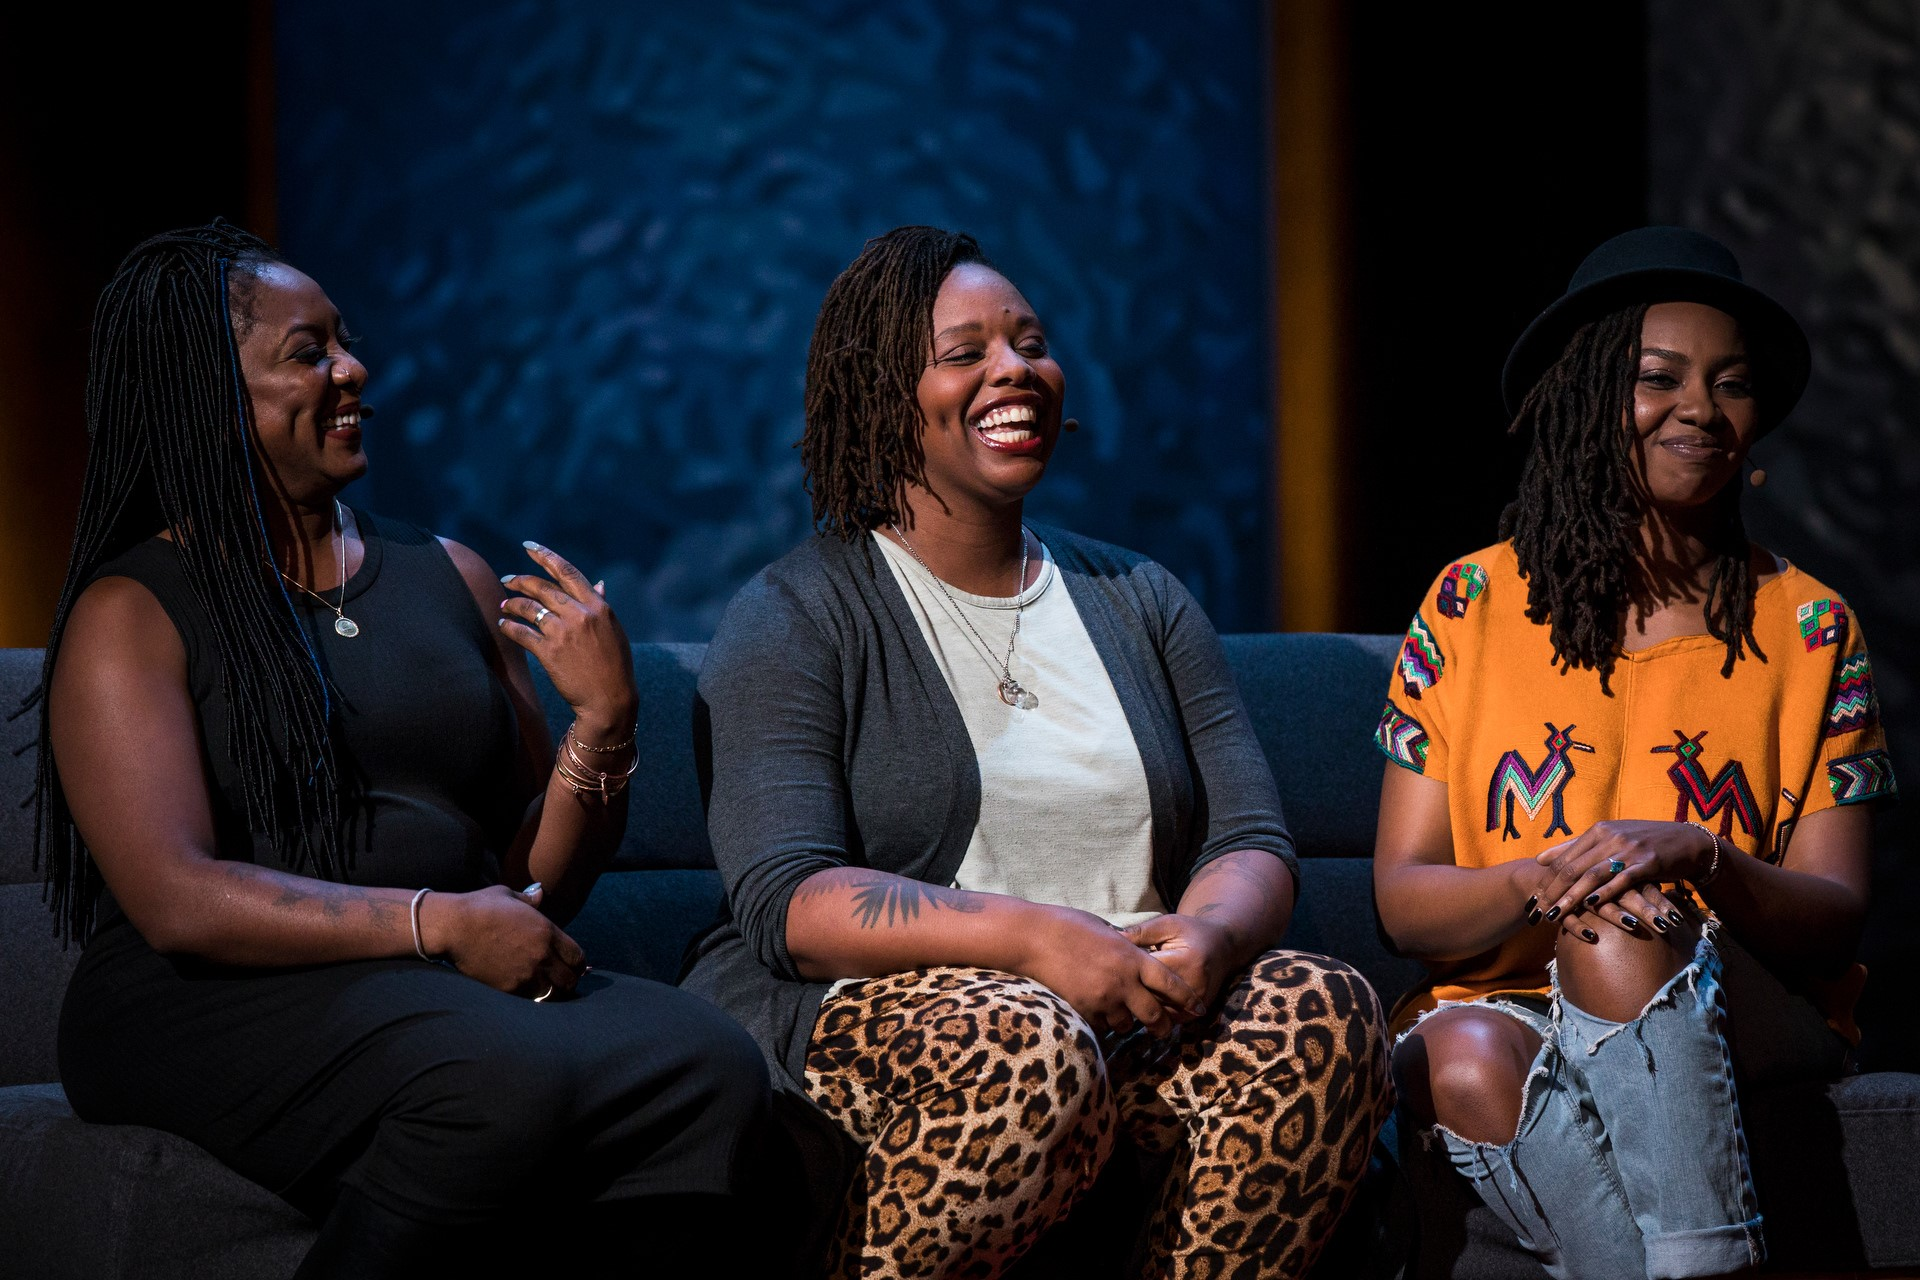 Photo of  Alicia Garza, Patrisse Cullors, and Opal Tometi, founders of the Black Lives Matter movement at TEDWomen 2016